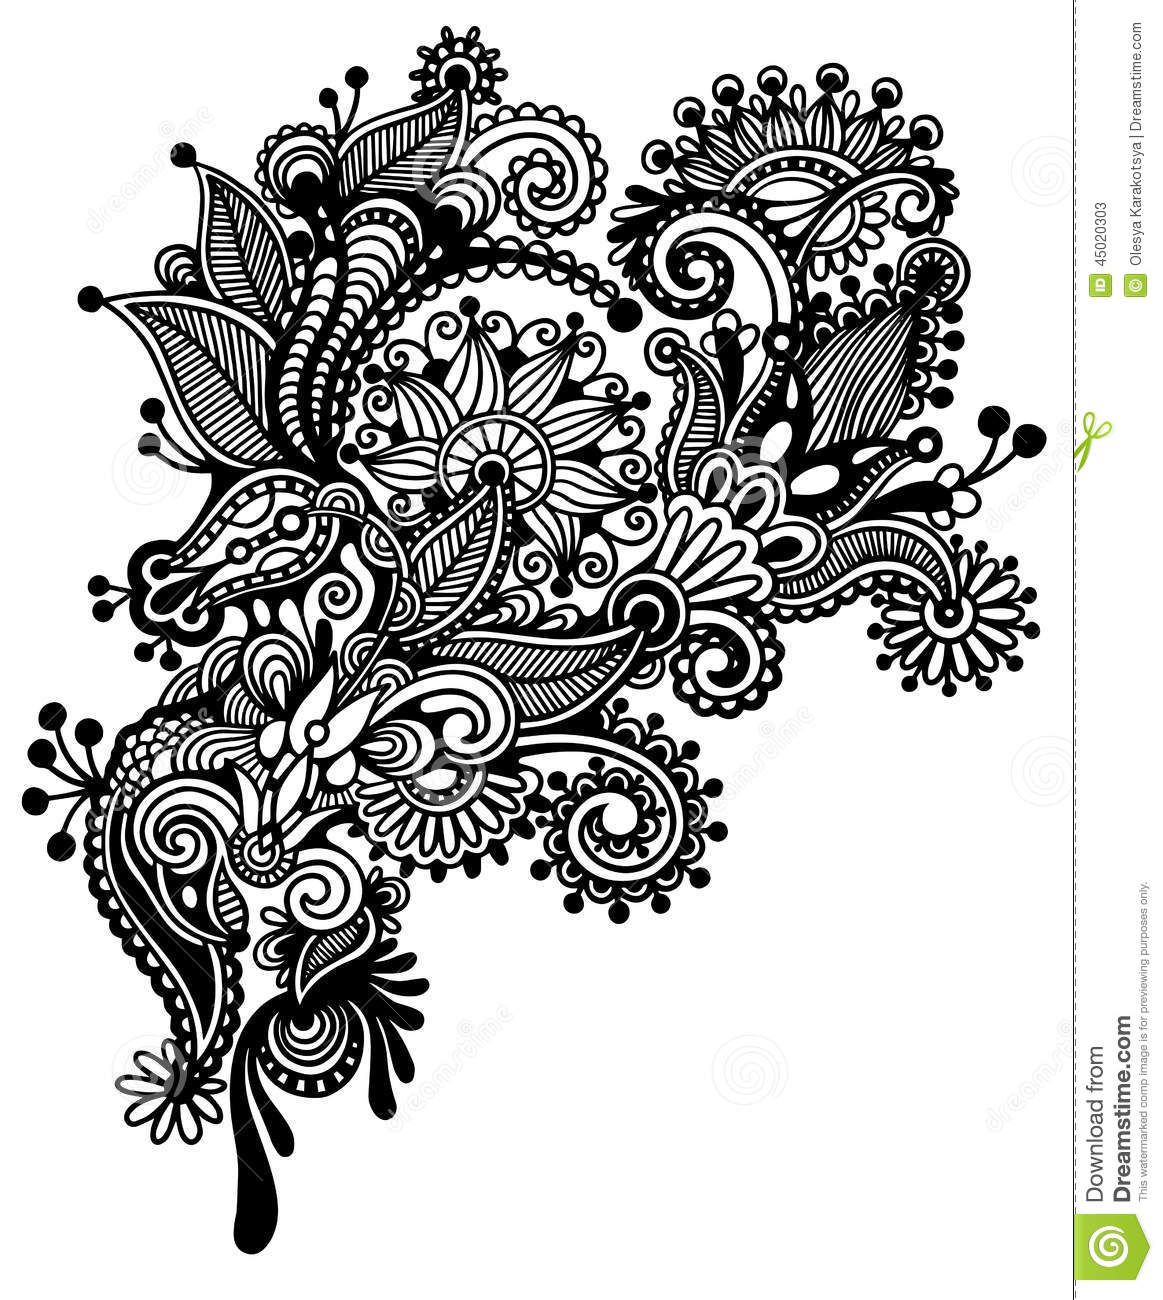 Black And White Line Drawing Flowers : Hand draw black and white line art ornate flower stock